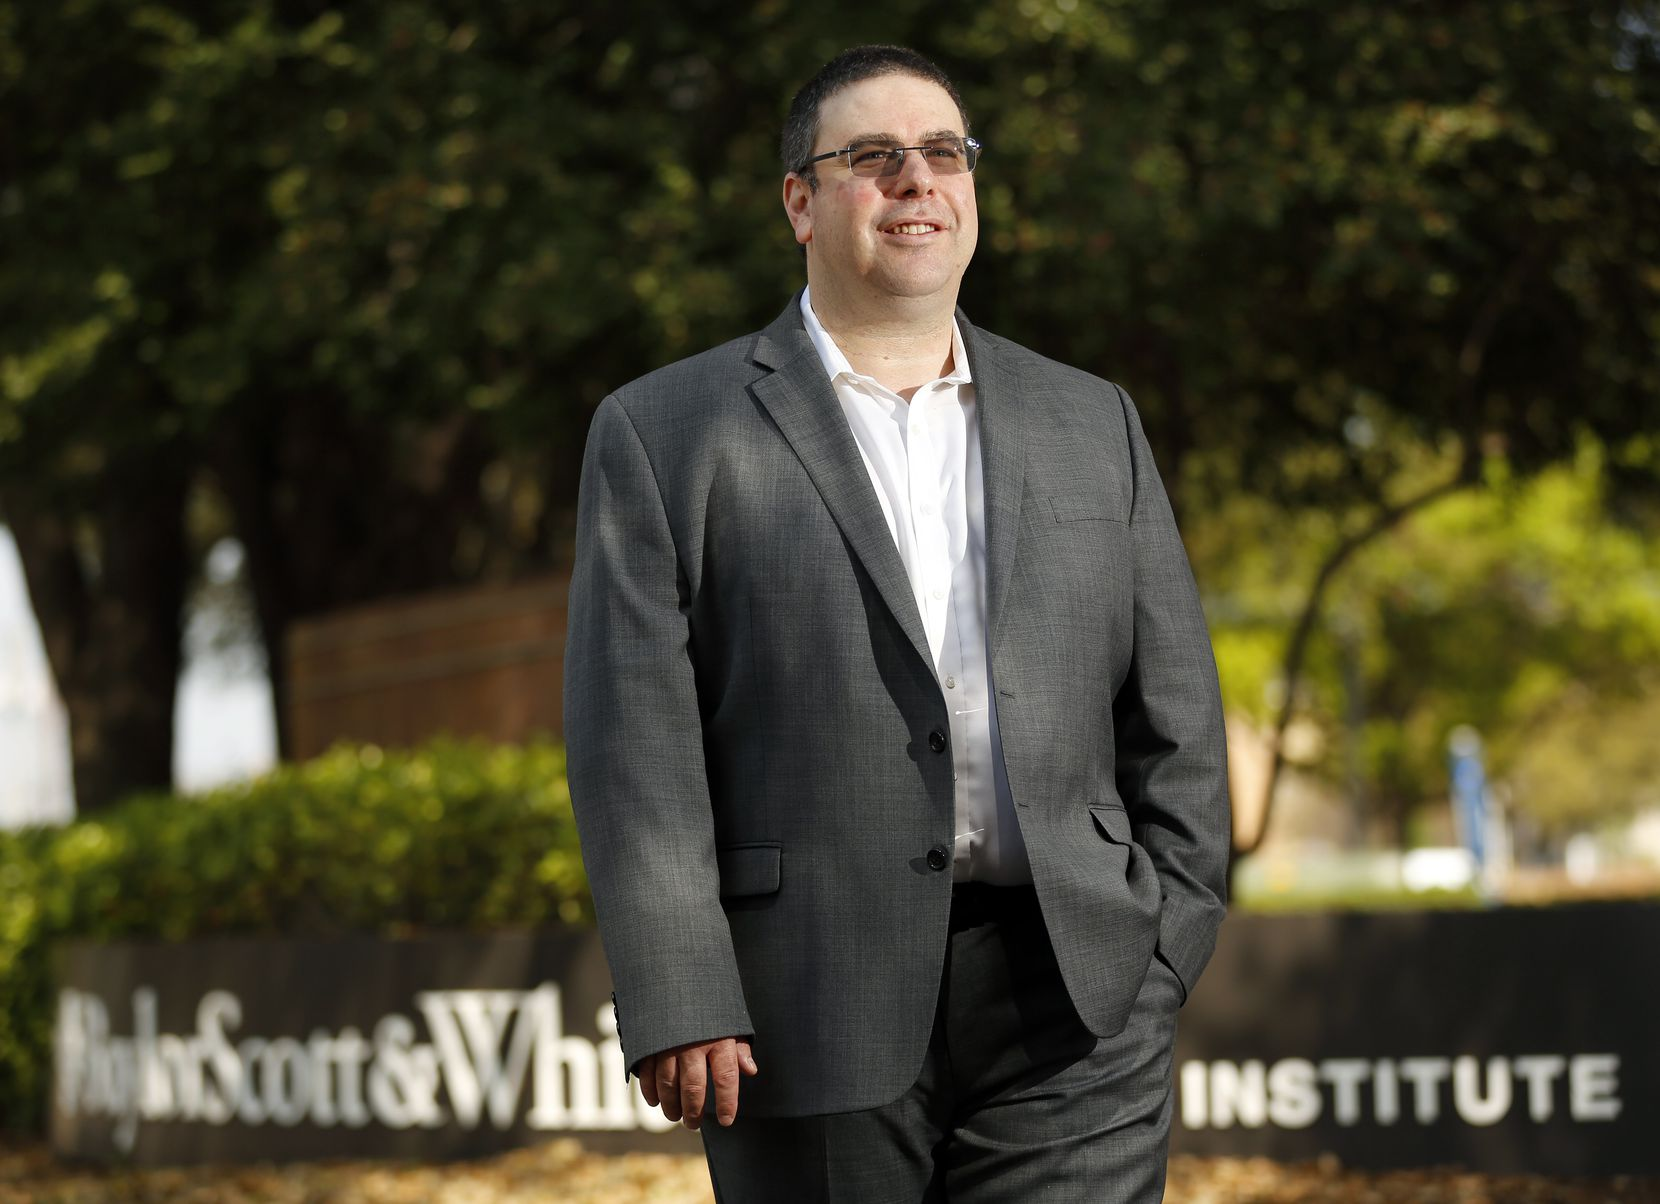 Dr. Robert L. Gottlieb is principal investigator of Baylor Scott and White  active clinical trials for COVID-19. He stood outside the research facility in Dallas on Thursday, March 26, 2020.